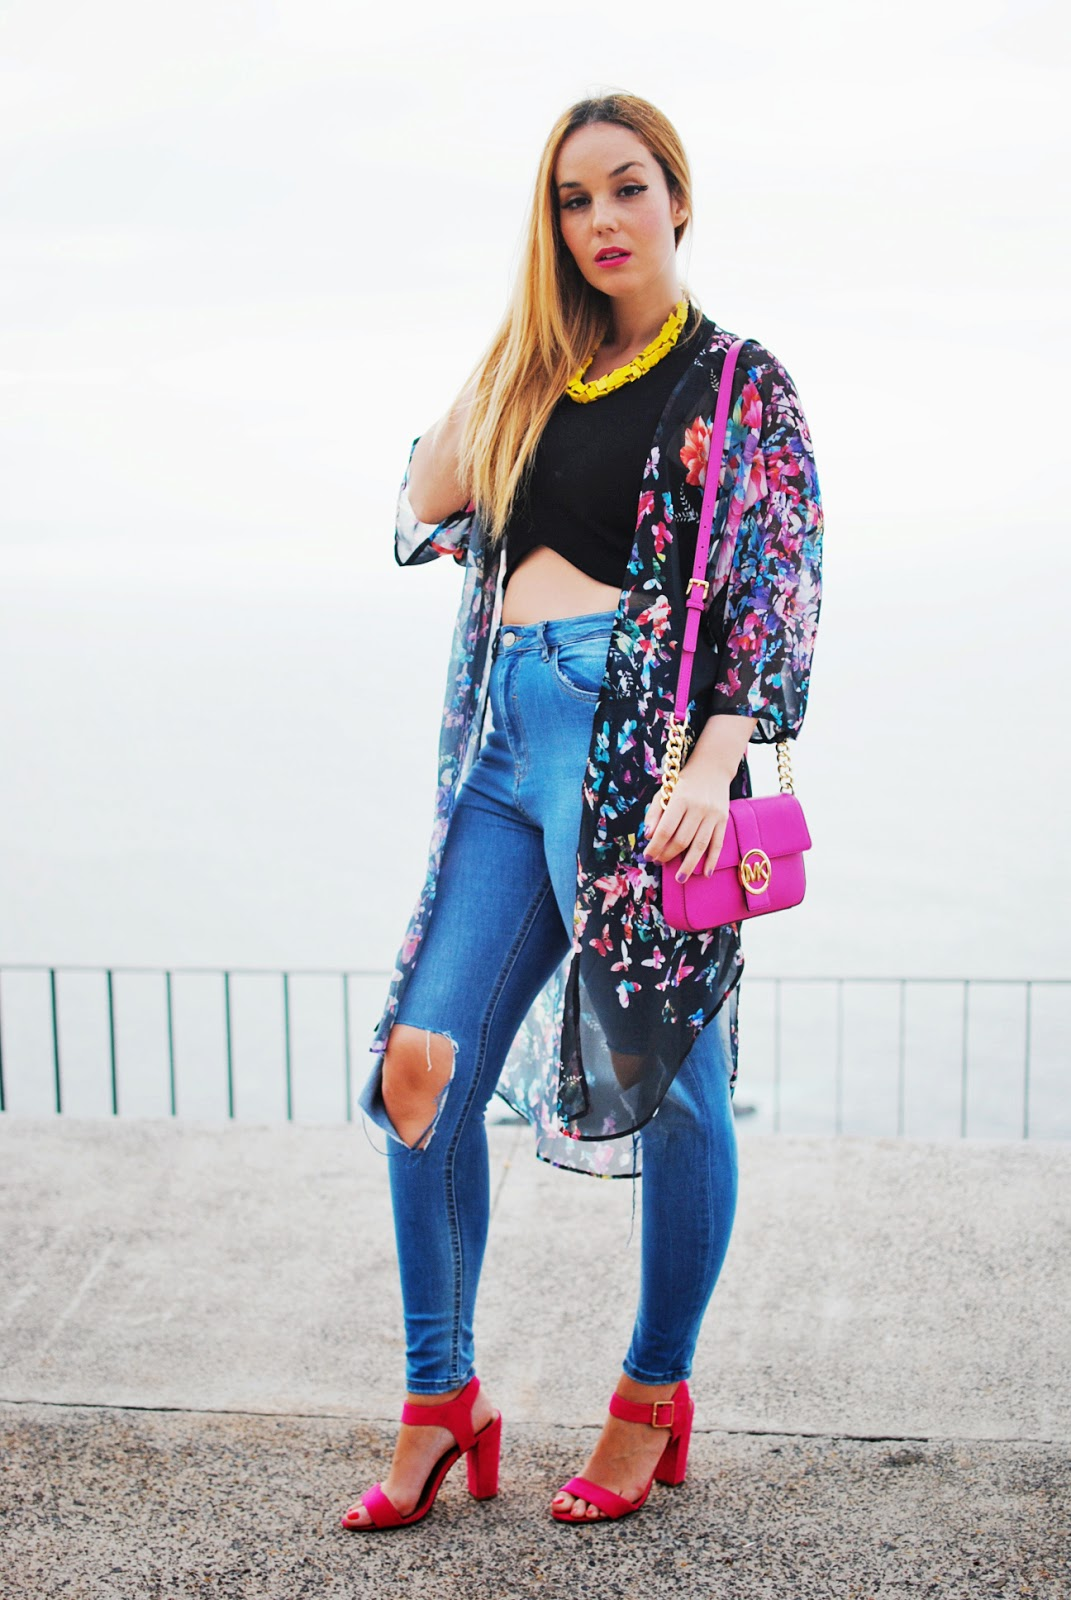 KIMONO, FLORAL PRINT, MOM JEANS, PANALONES DE MAMÁ, RIPPED JEANS, Primark